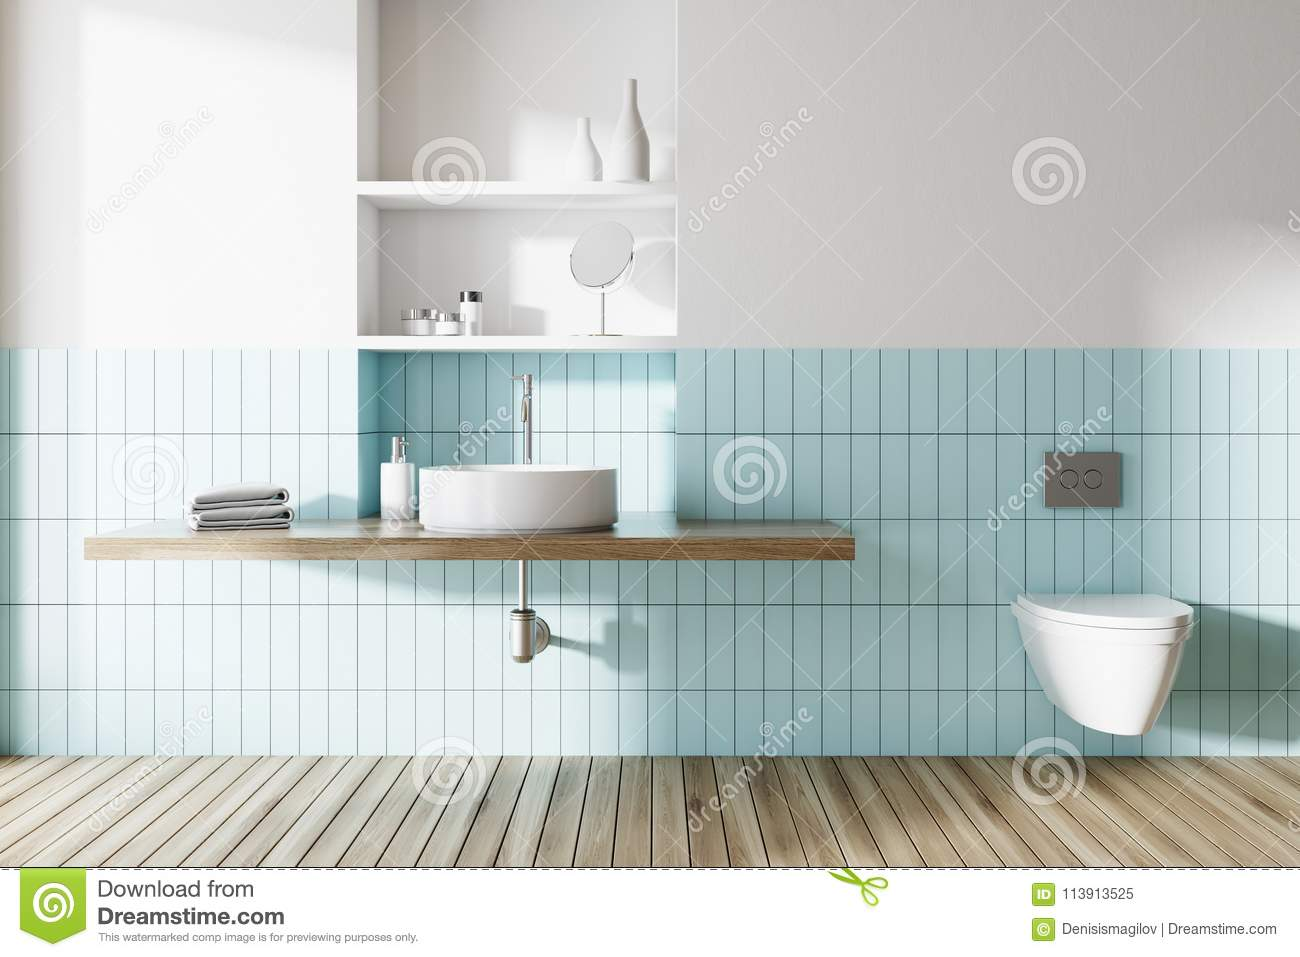 Sink And Toilet In A Blue And White Bathroom Stock Illustration